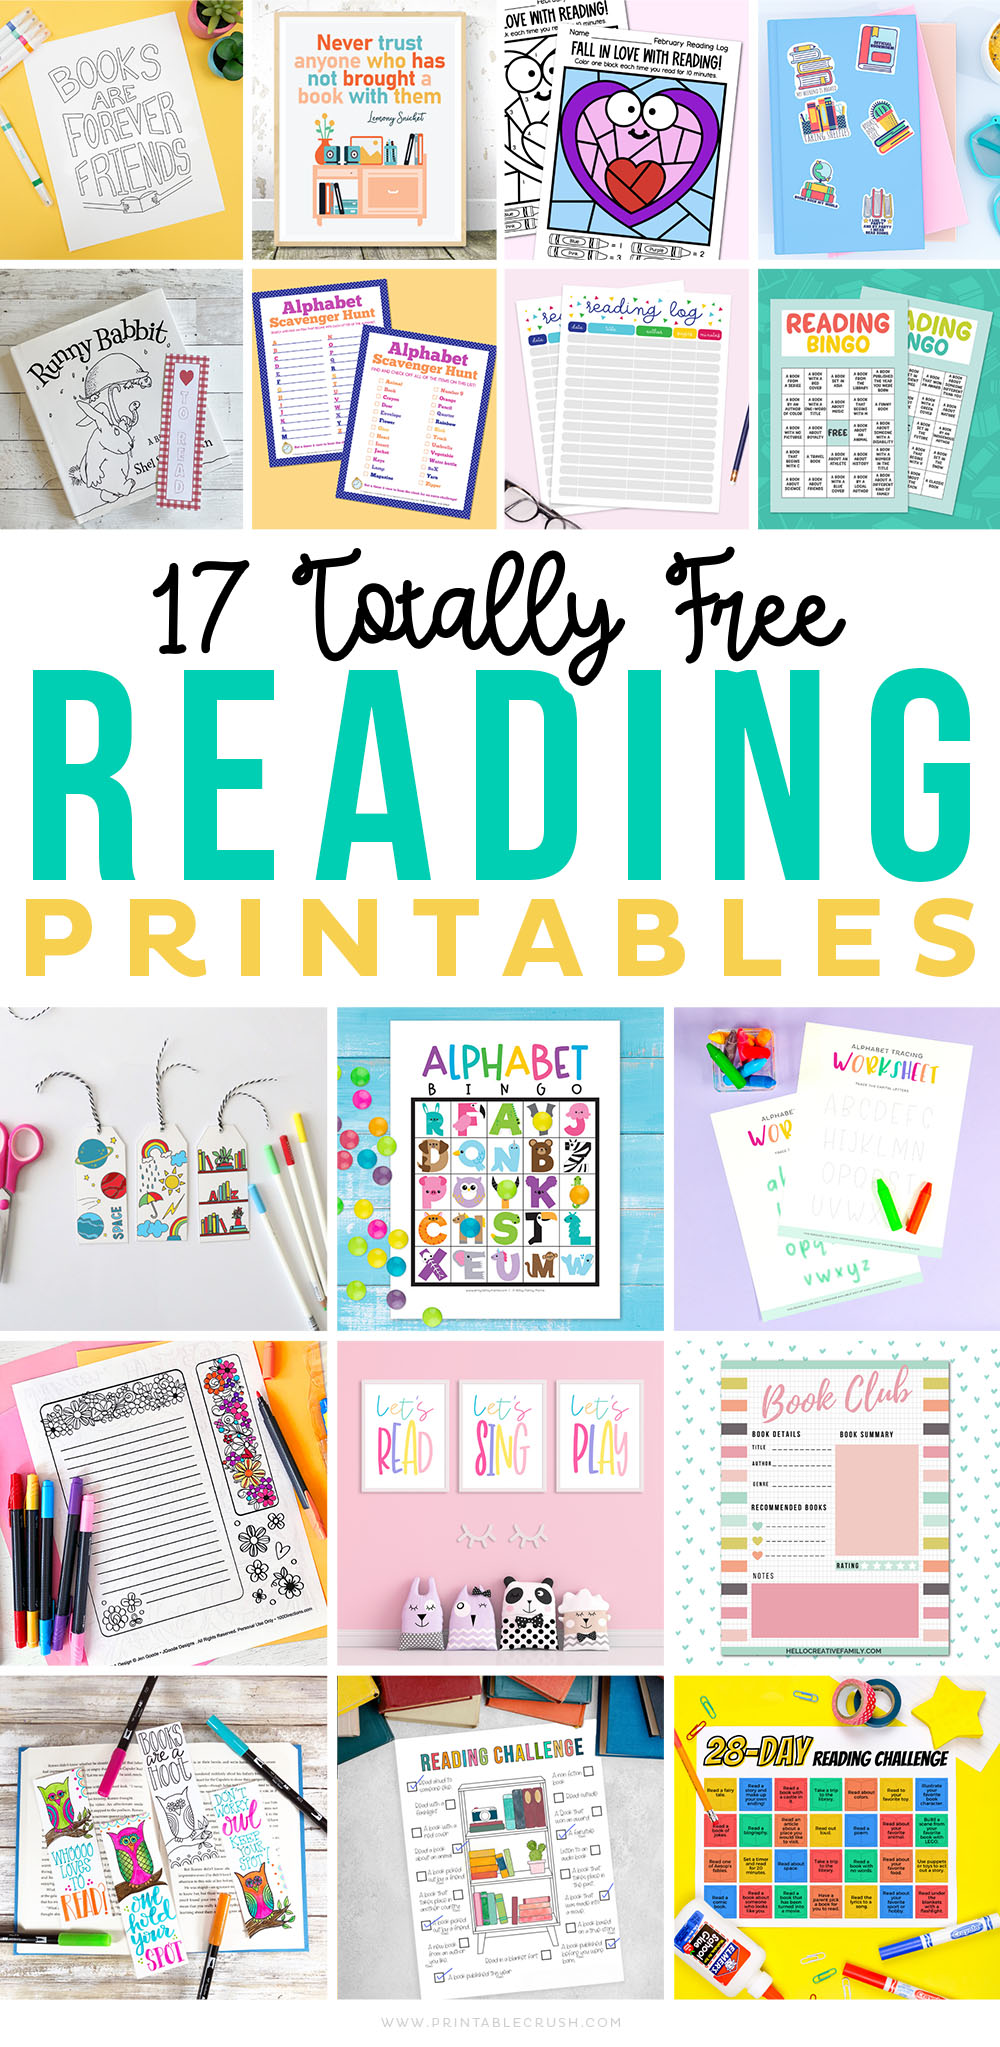 17 Free Reading Printables - Printables for Reading and Alphabet learning - Homeschool printables -Printable Crush